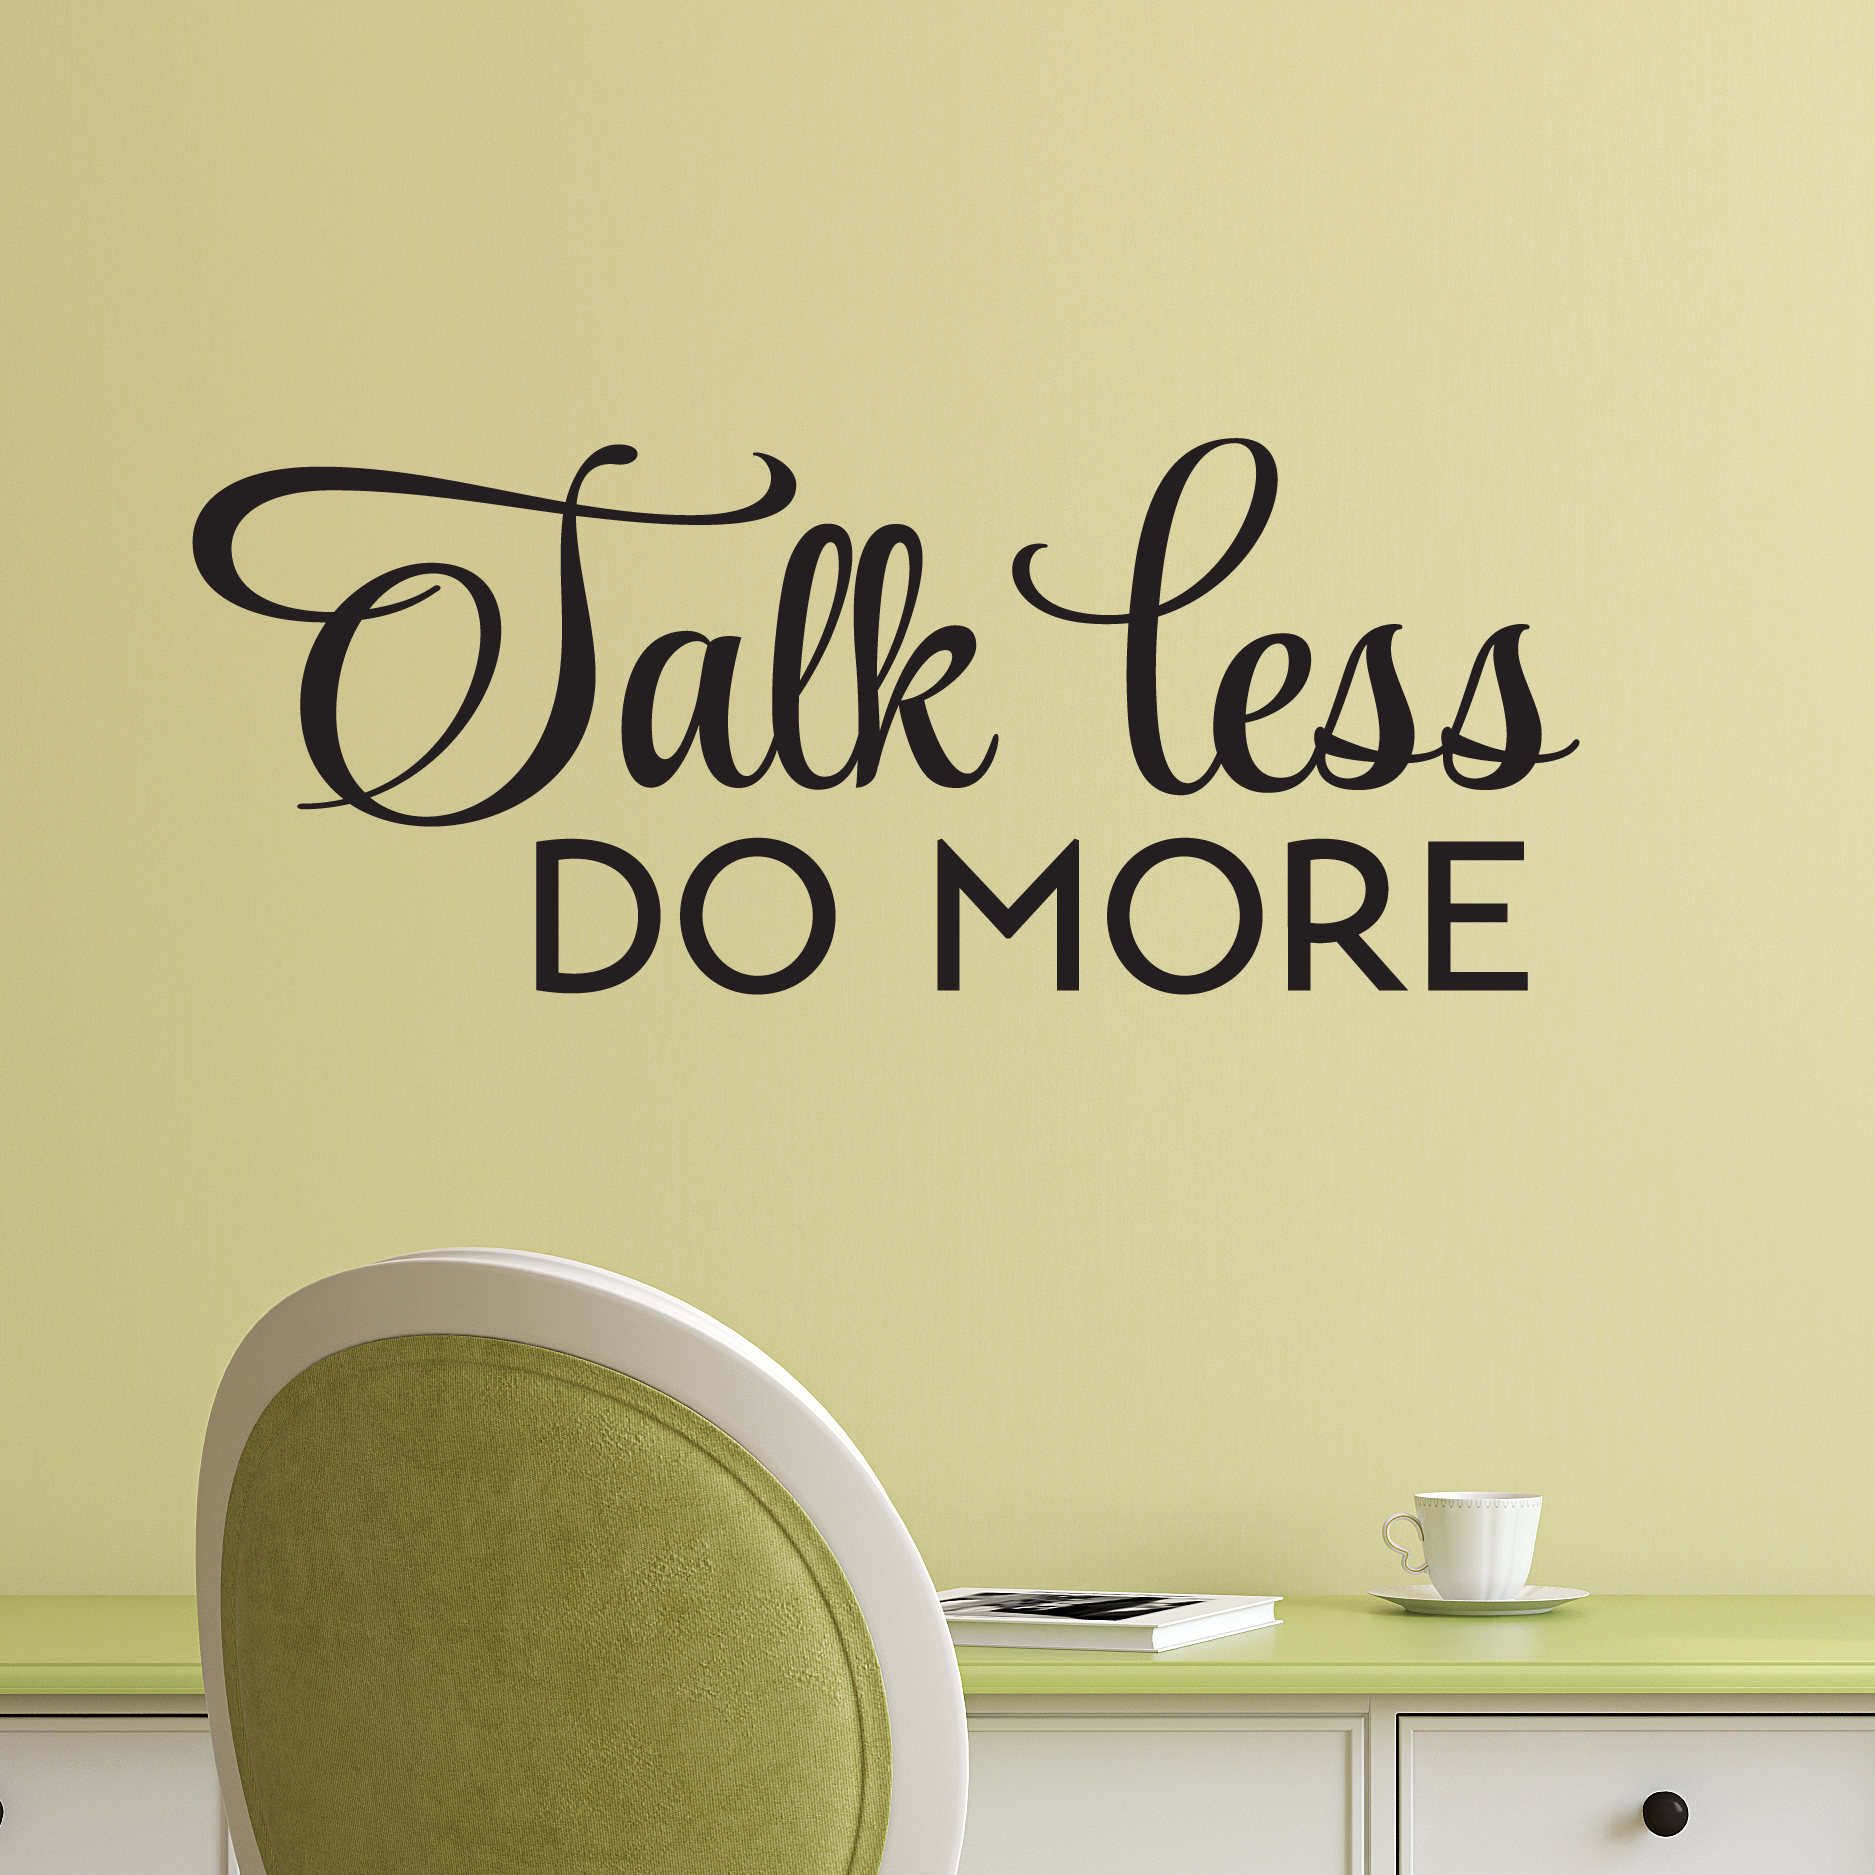 Where In The Bible Does It Talk About Christmas Trees: Talk Less Do More Wall Quotes™ Decal